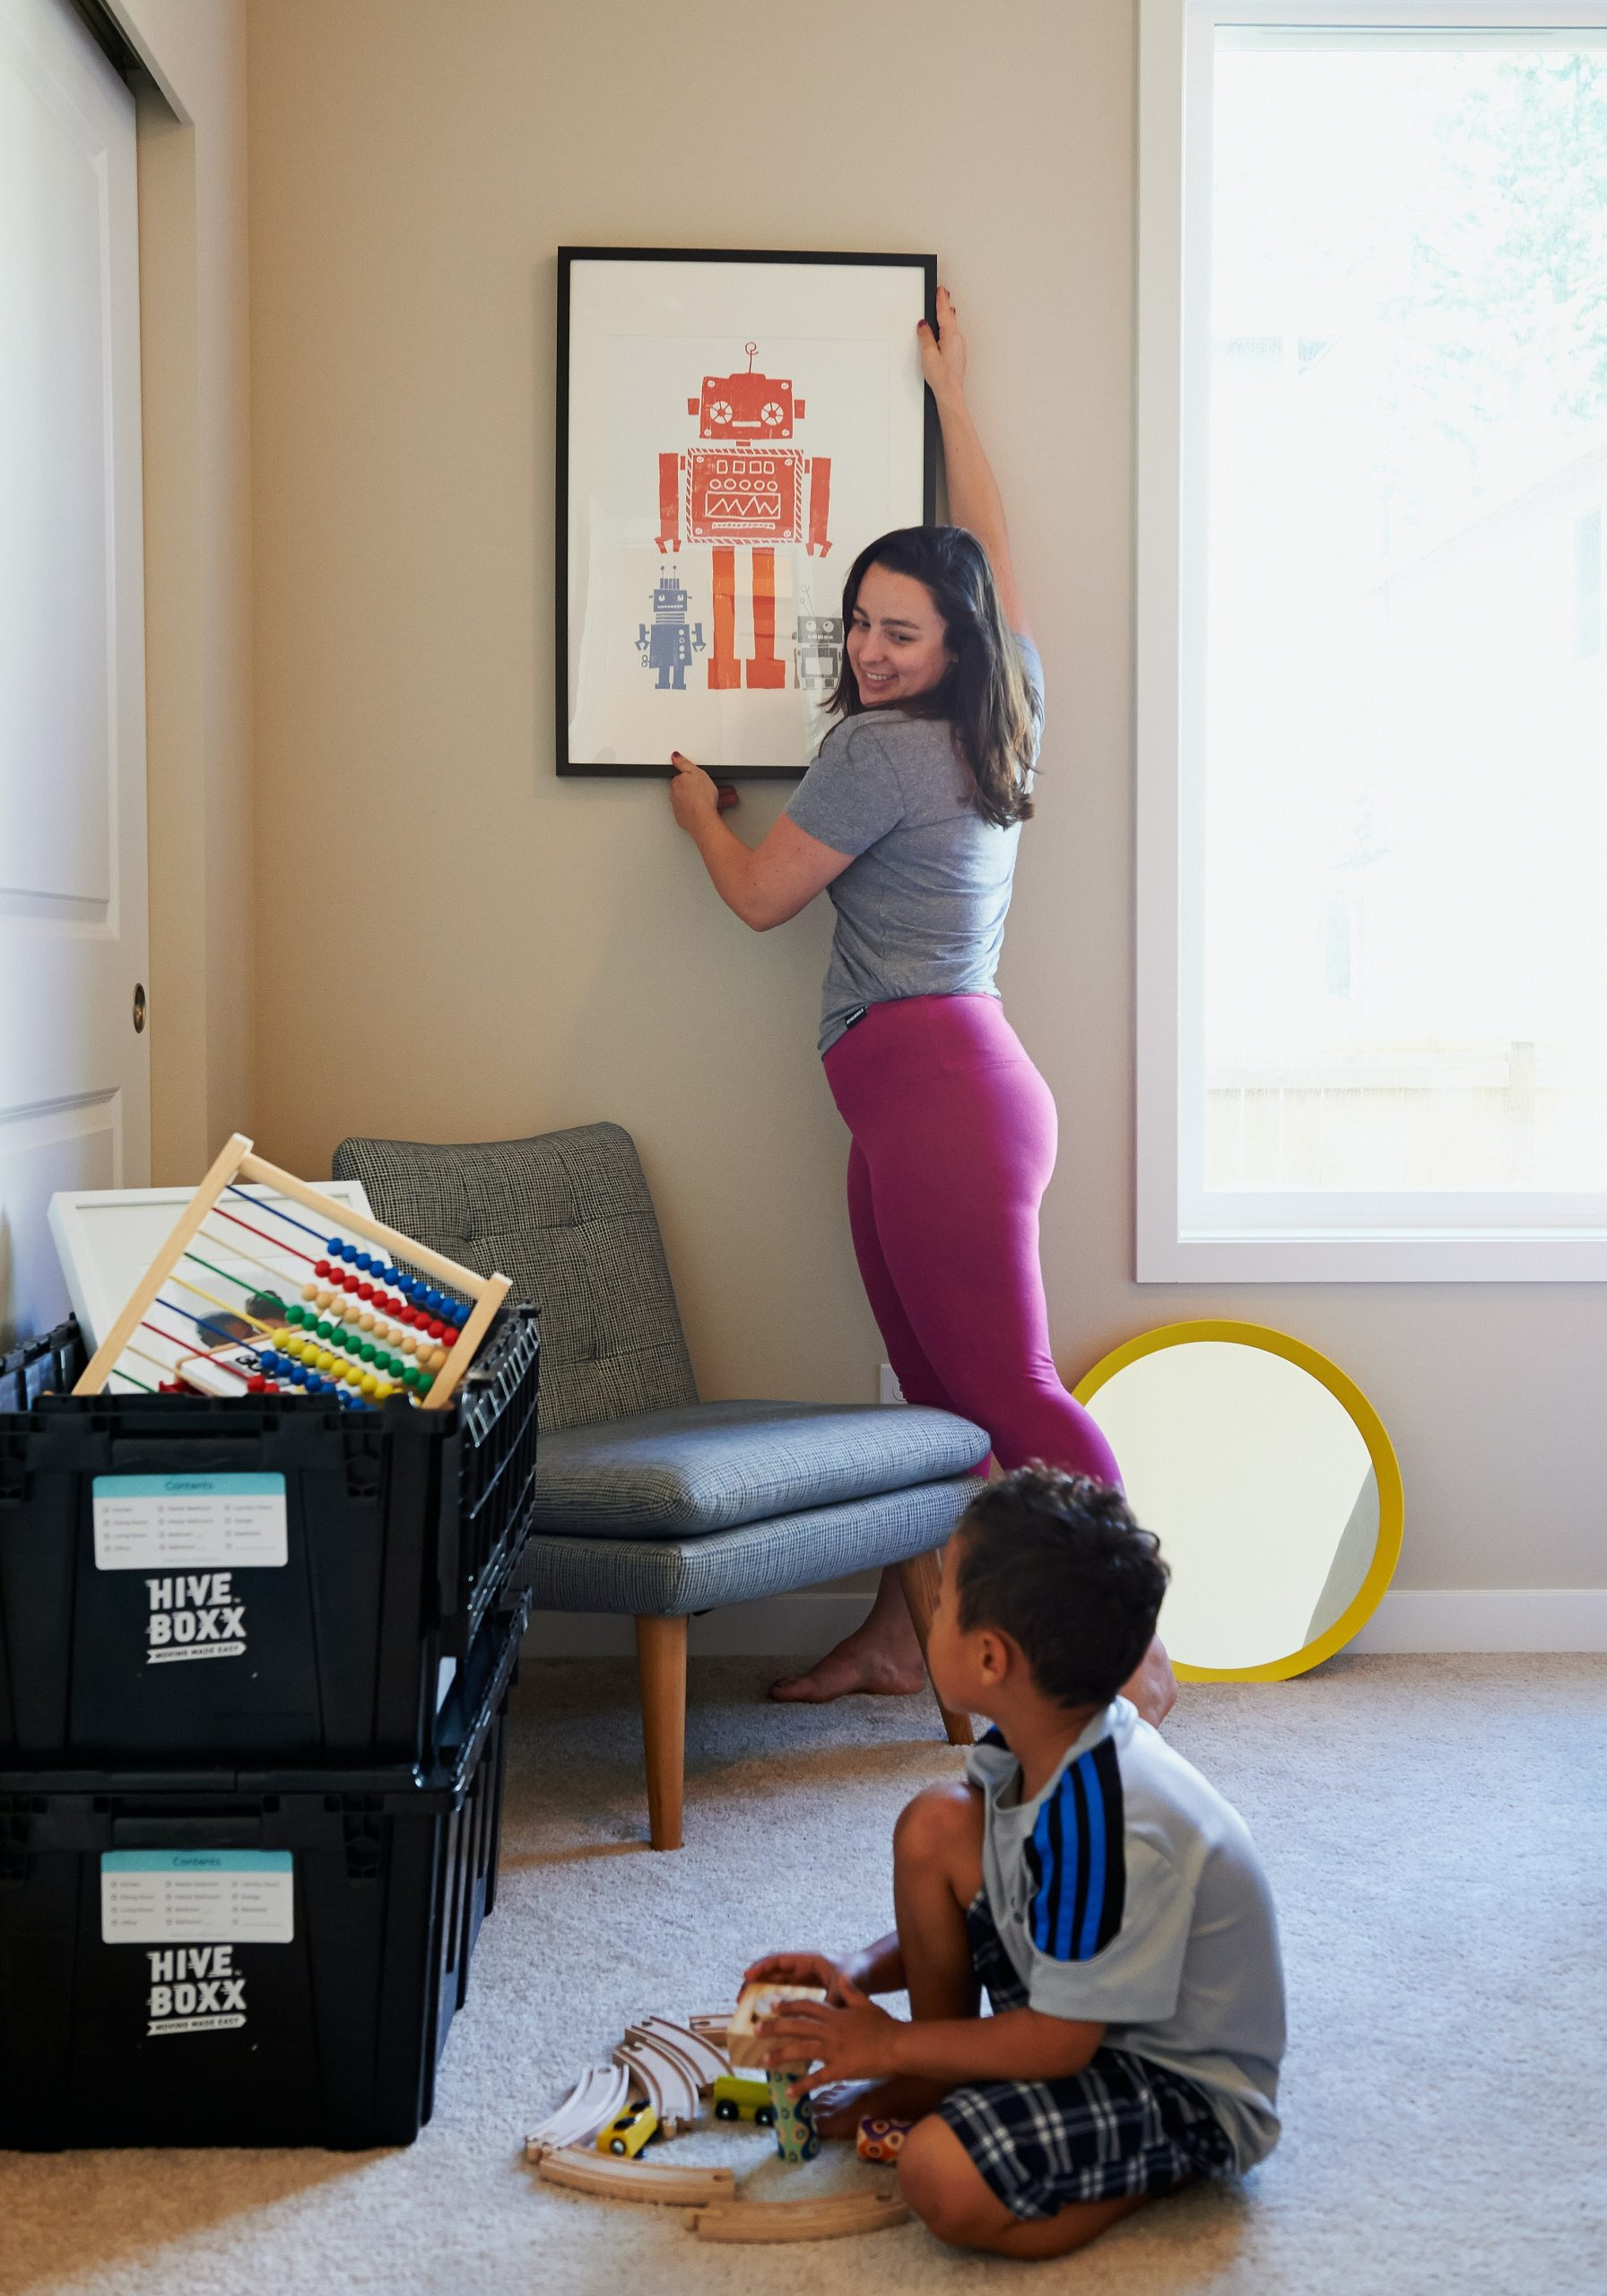 mother hanging a picture in a house with child watching